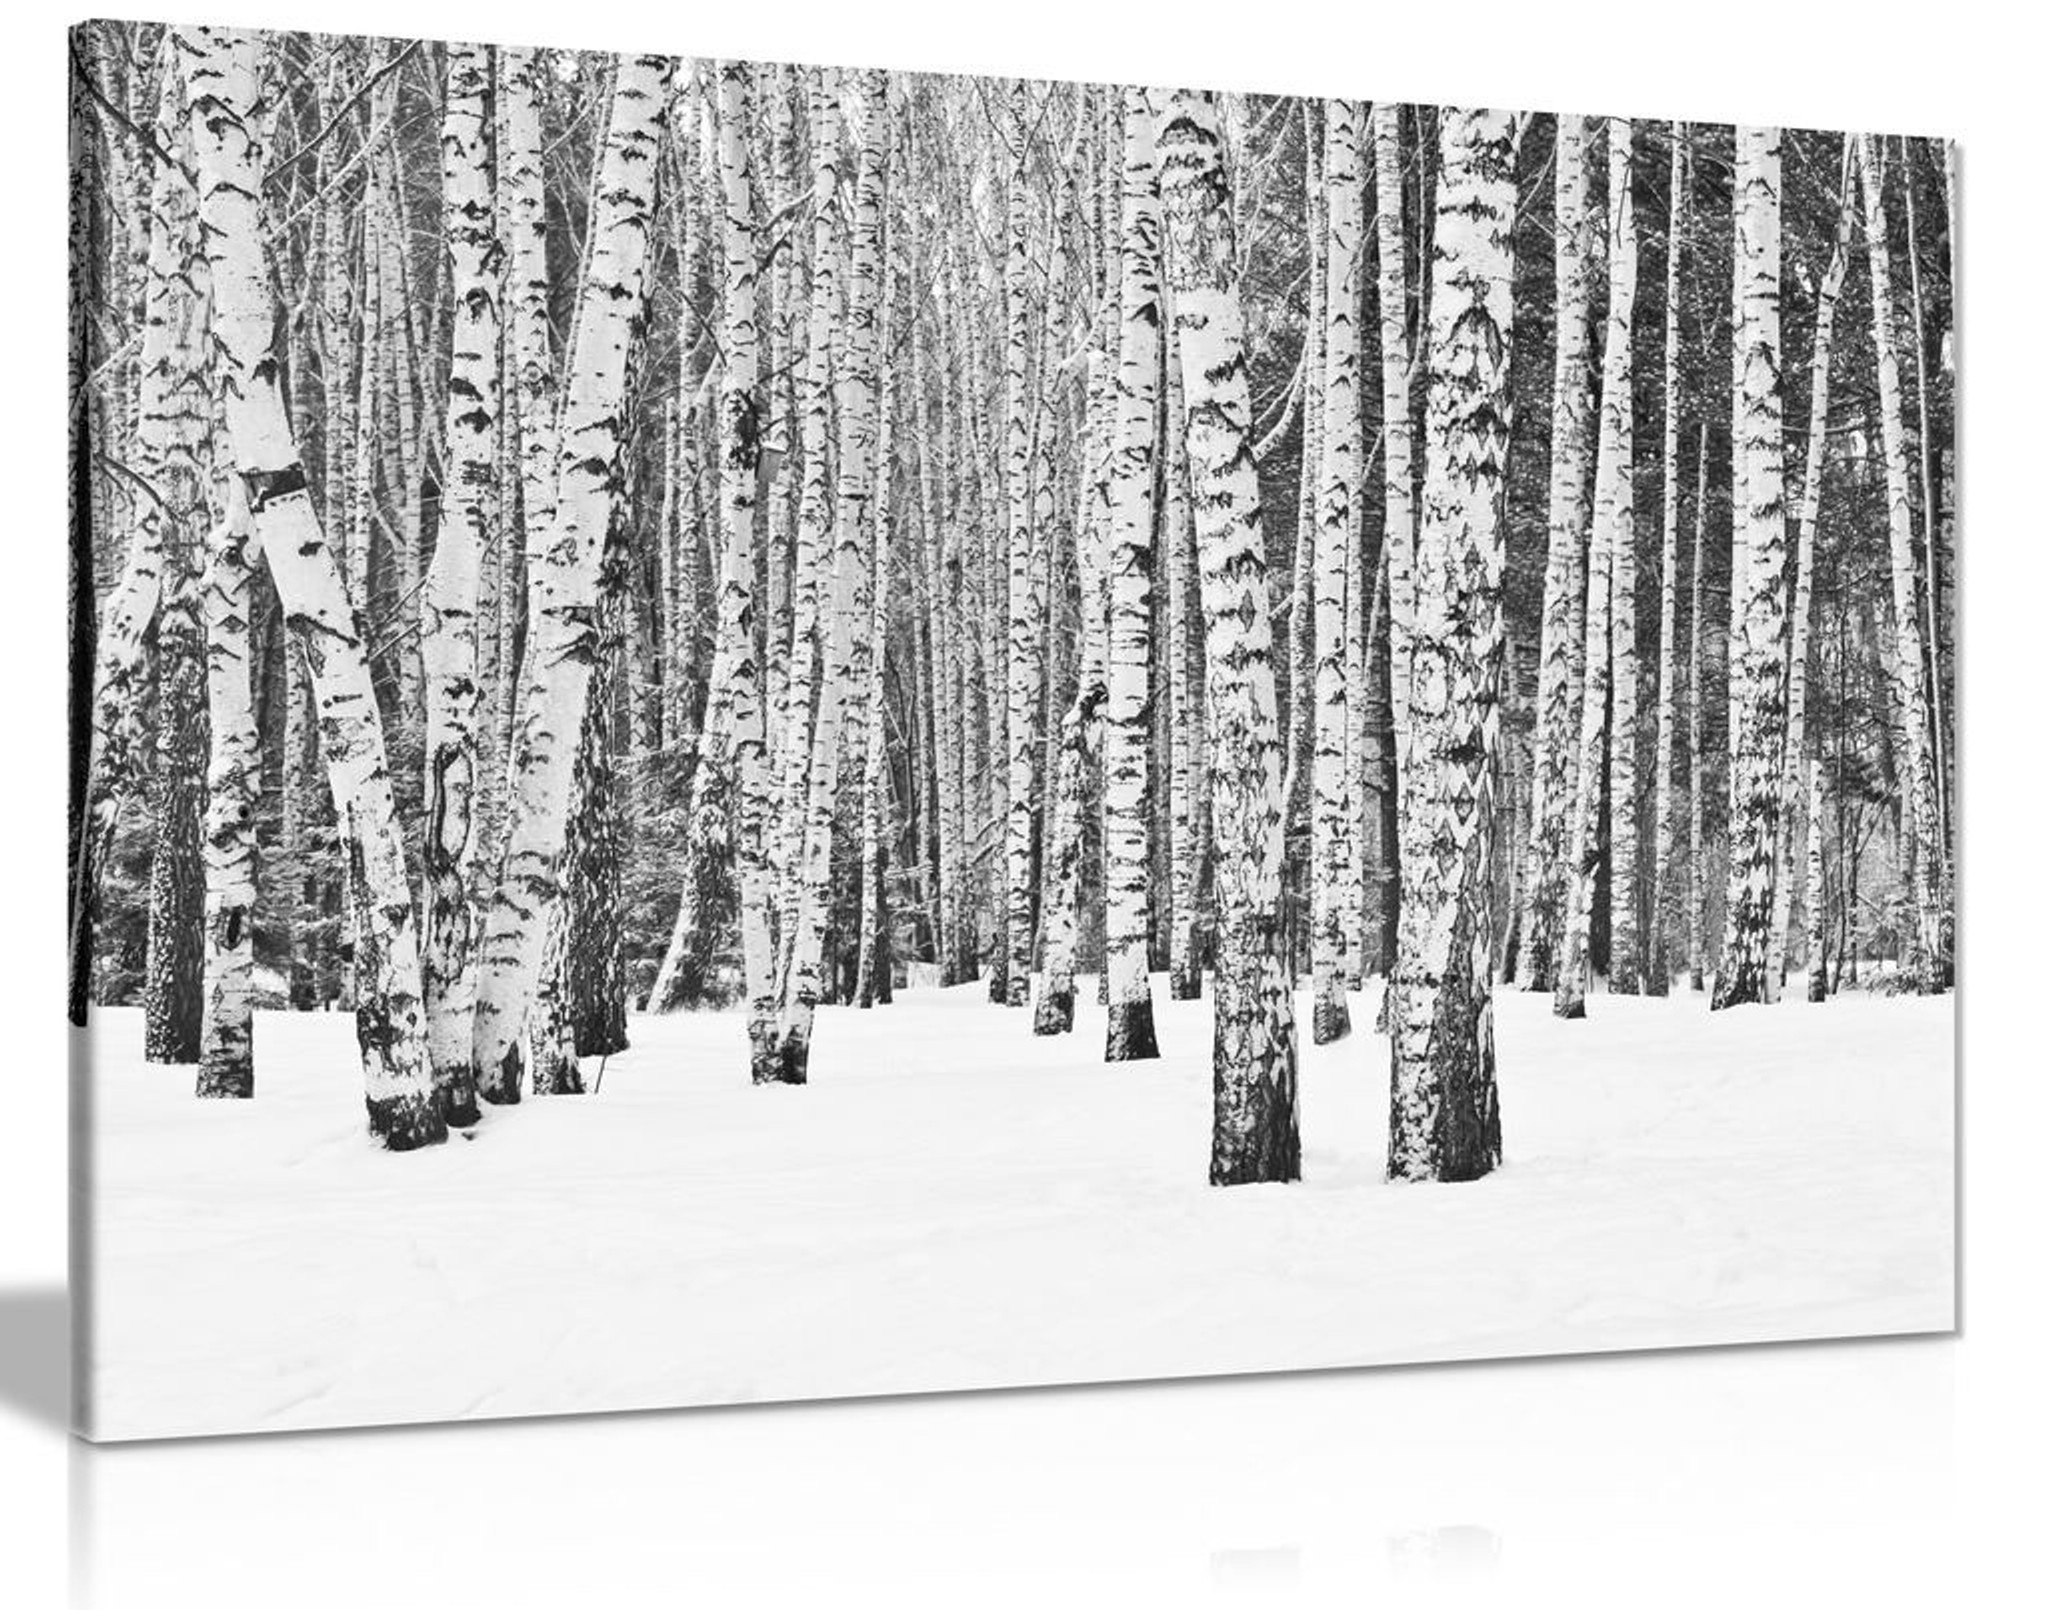 Rustic Art Tree Forest In Winter In Black & White Canvas